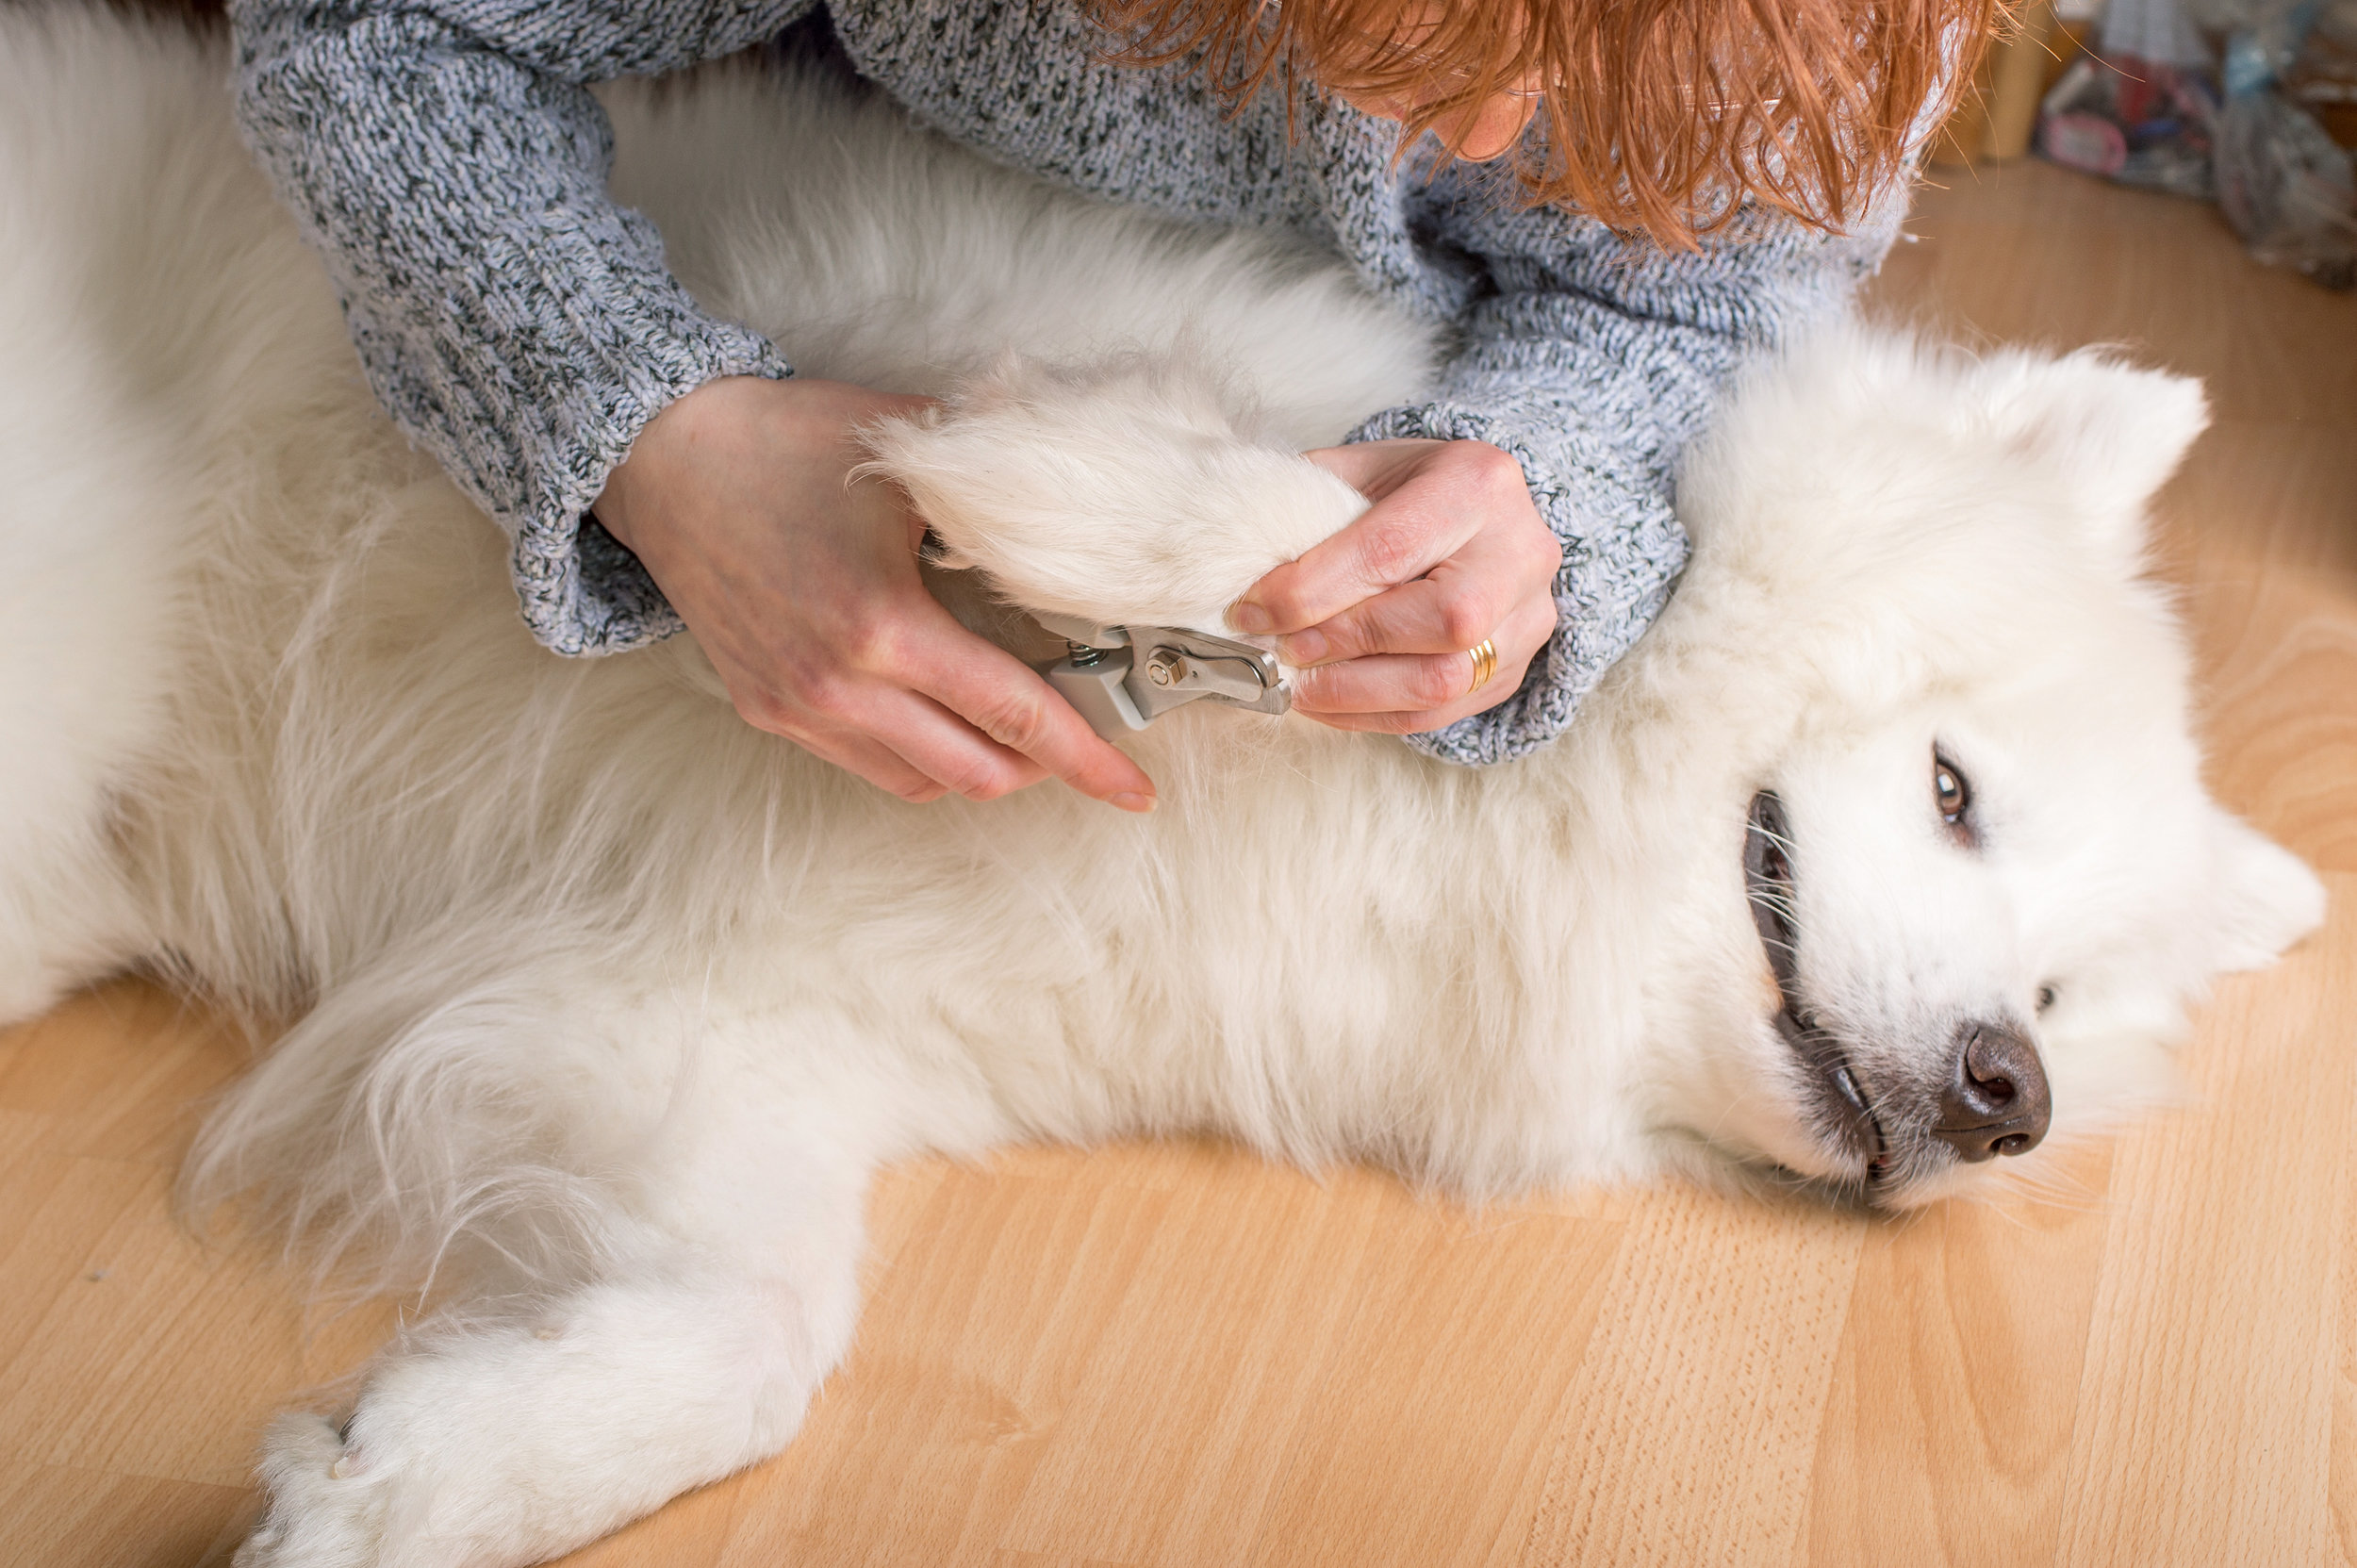 Keeping your dog's nails trimmed is important to his health.